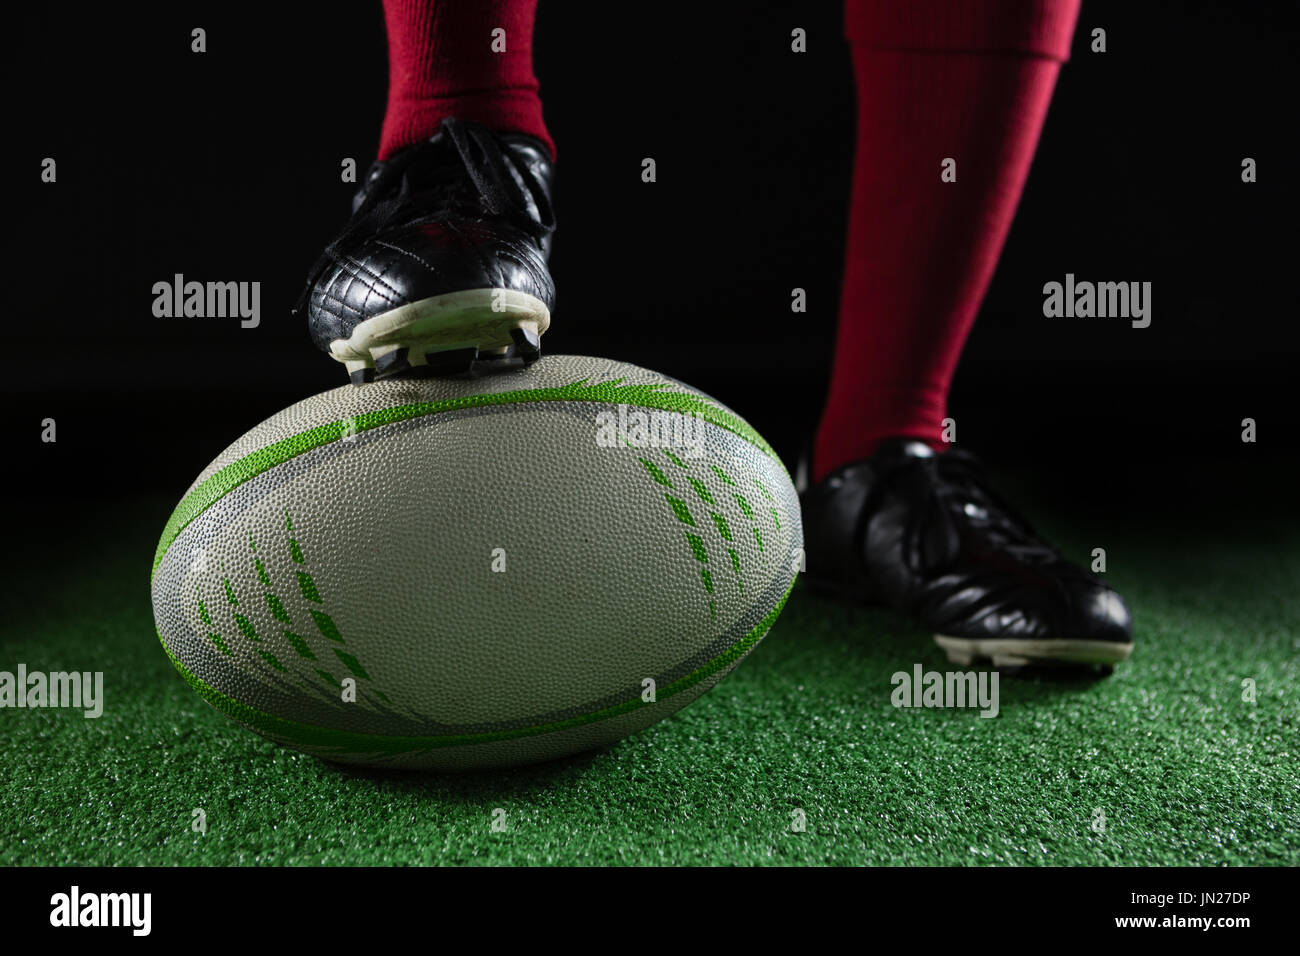 Low section of person stepping on rugby ball while plying rugby - Stock Image